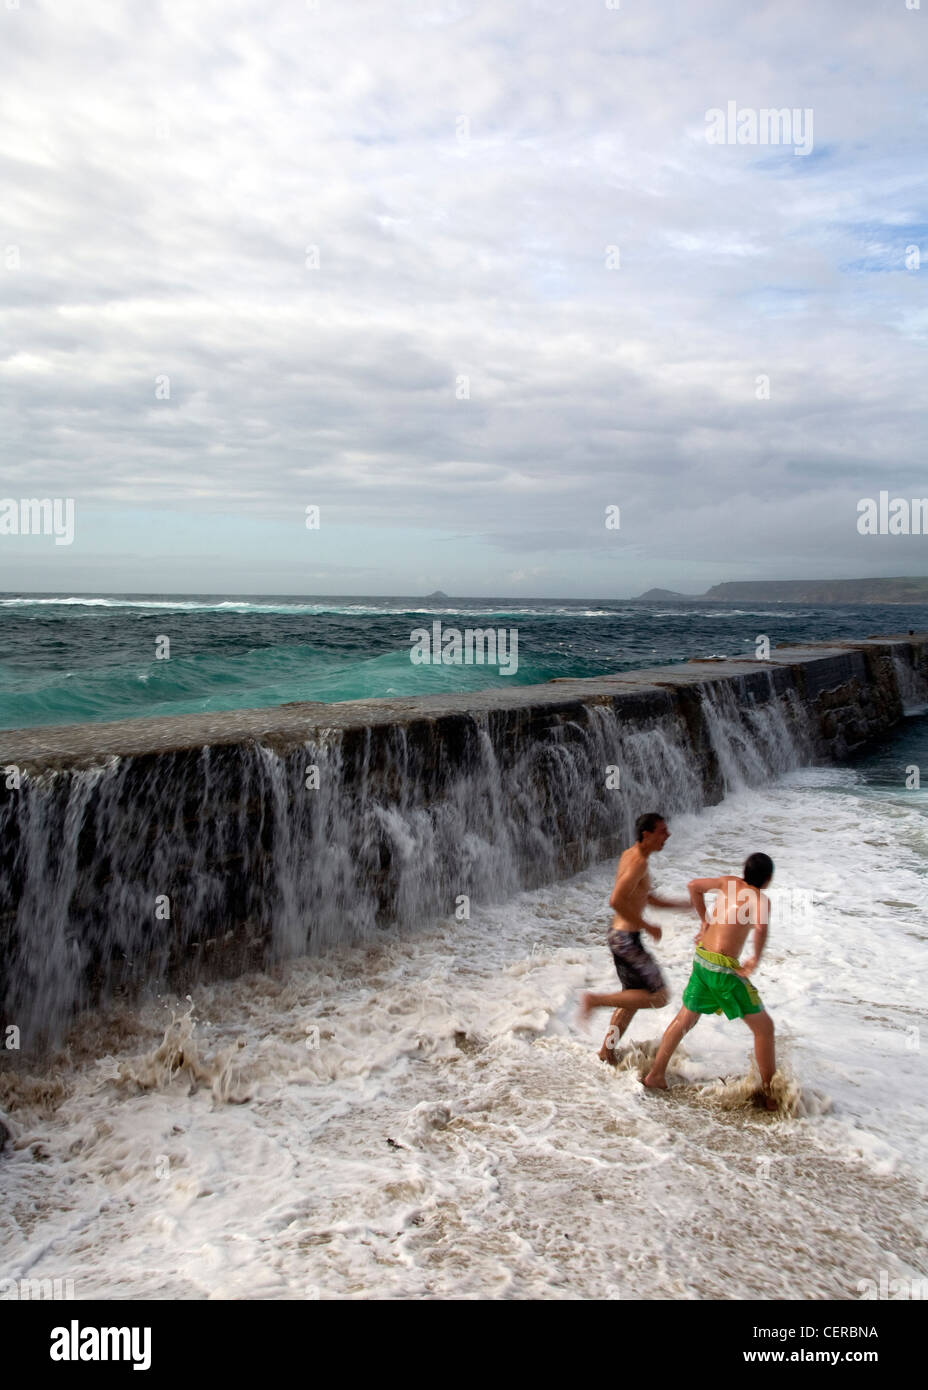 Running away. Escaping the stormy  waves crashing over the breakwater, drenching visitors, with violent explosions - Stock Image